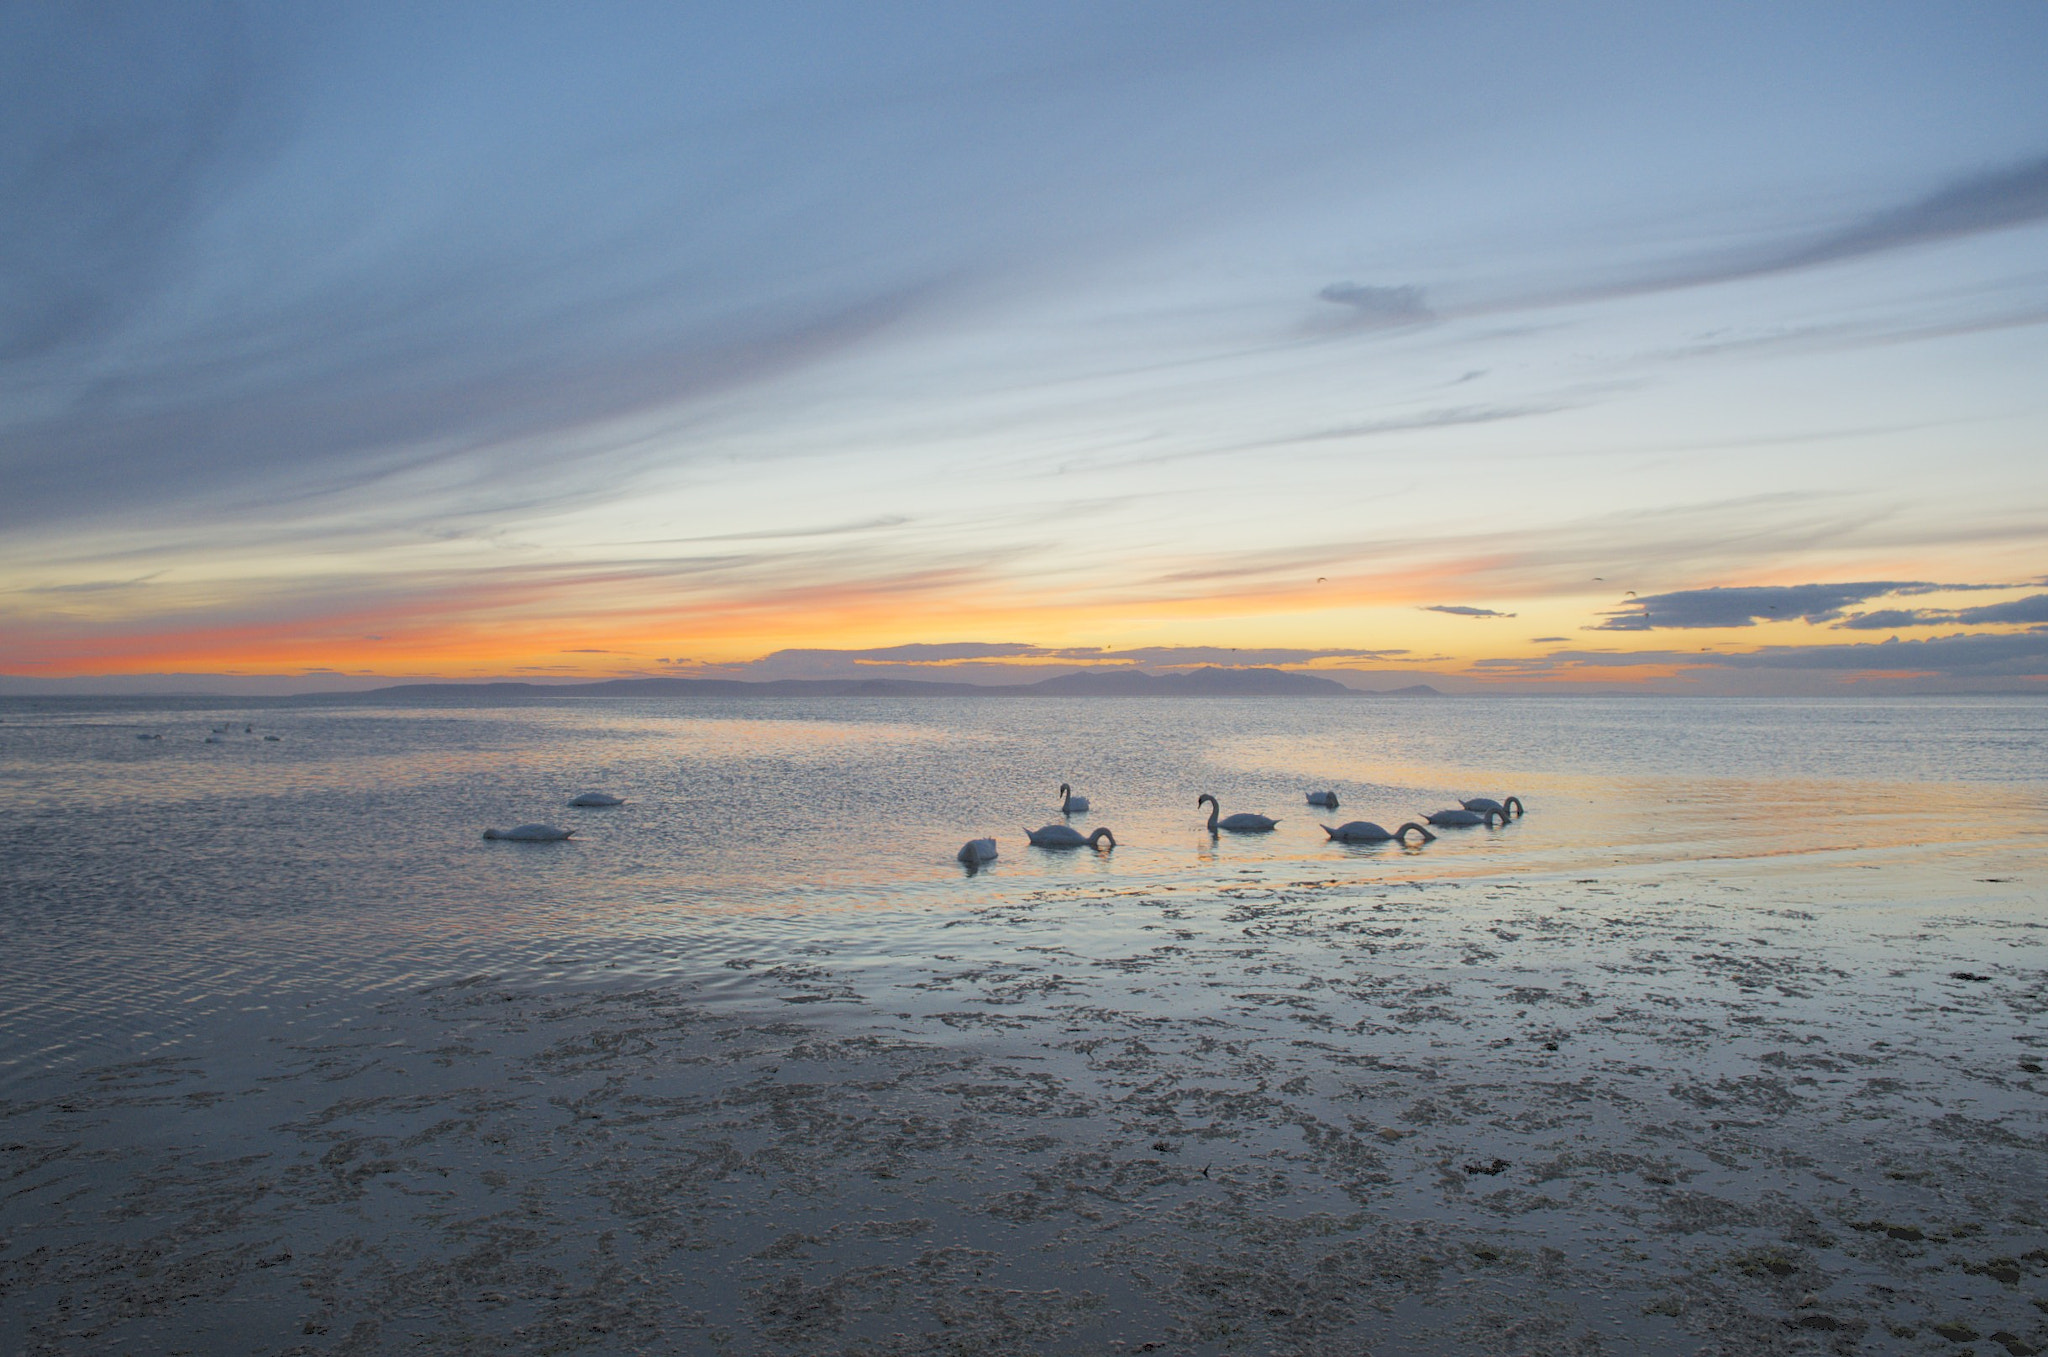 Photograph Swans at  sunset at Ayr Beach by Craig MacLeod on 500px